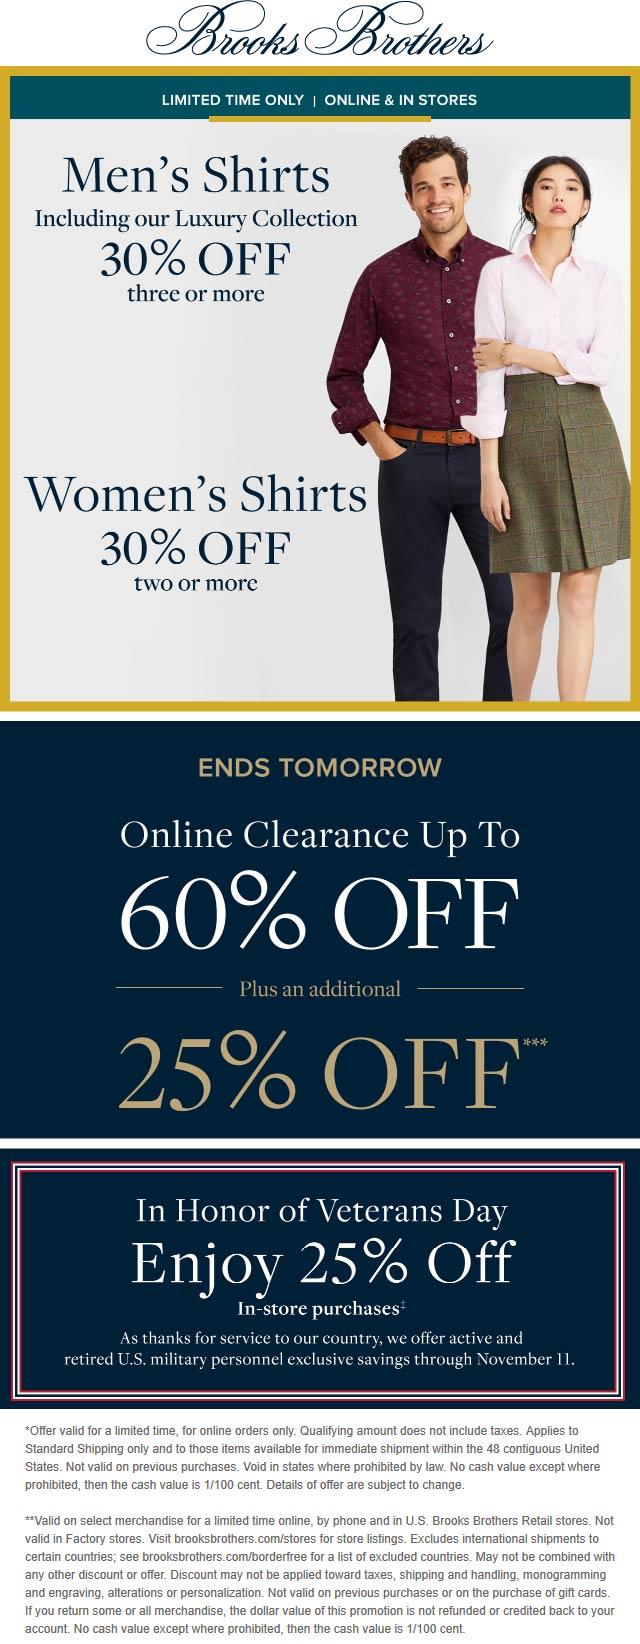 Brooks Brothers Coupon January 2020 30% off shirts & more at Brooks Brothers, ditto online